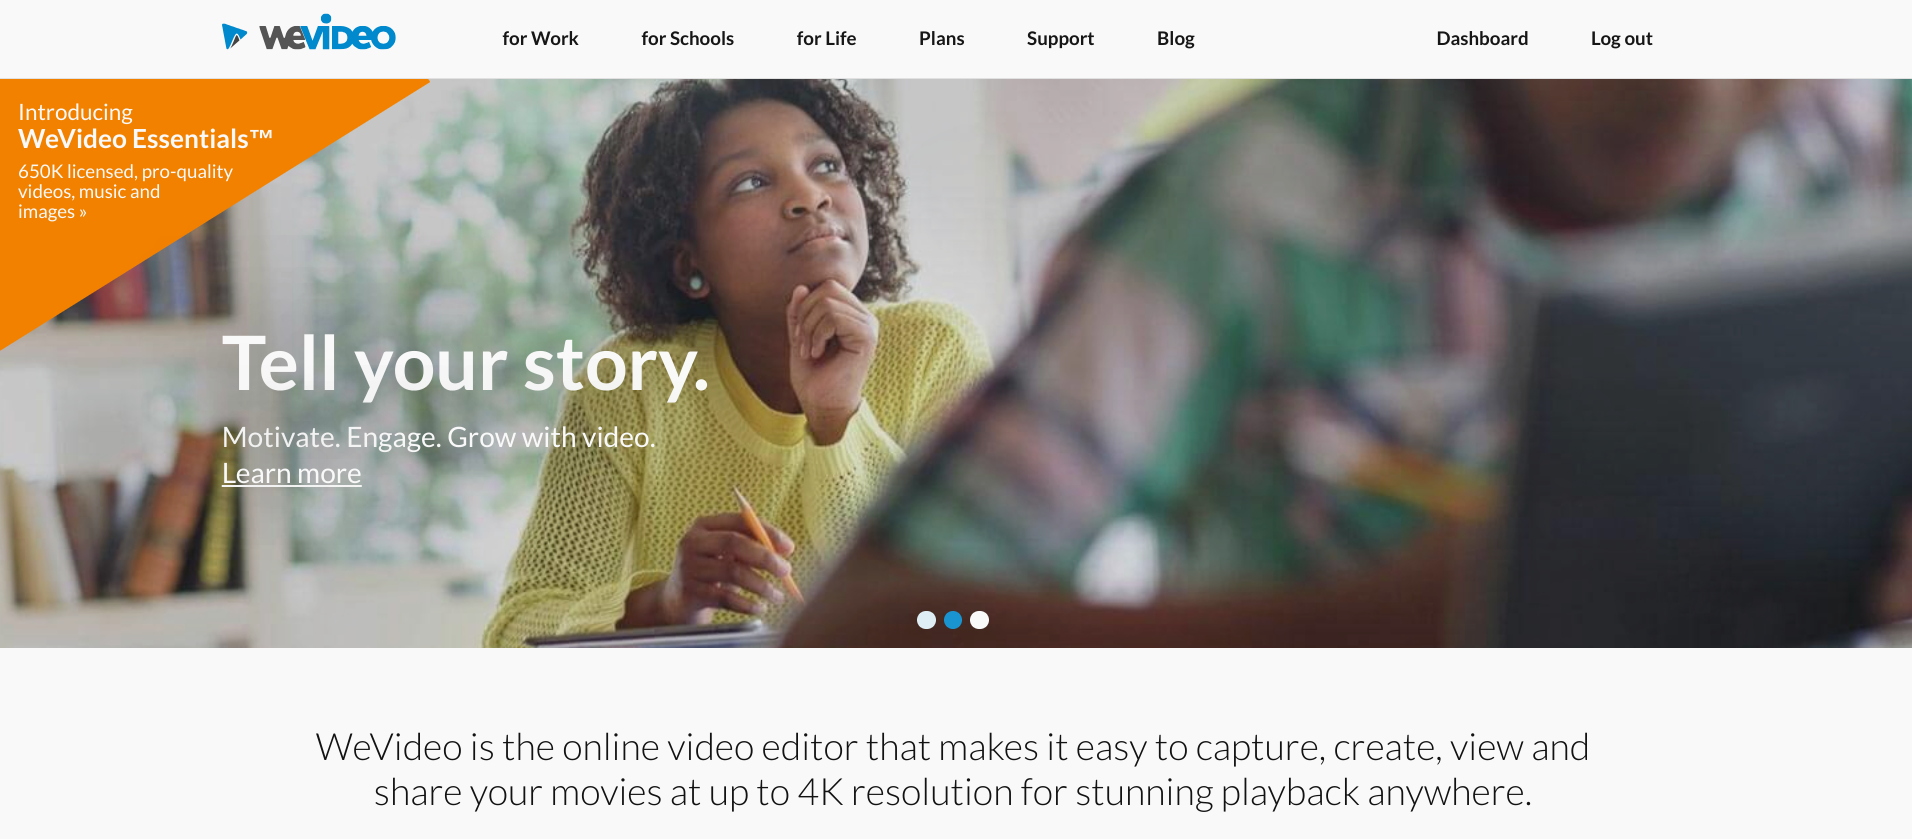 9 Free Resources to Add Production Value To Your Kajabi Course Videos